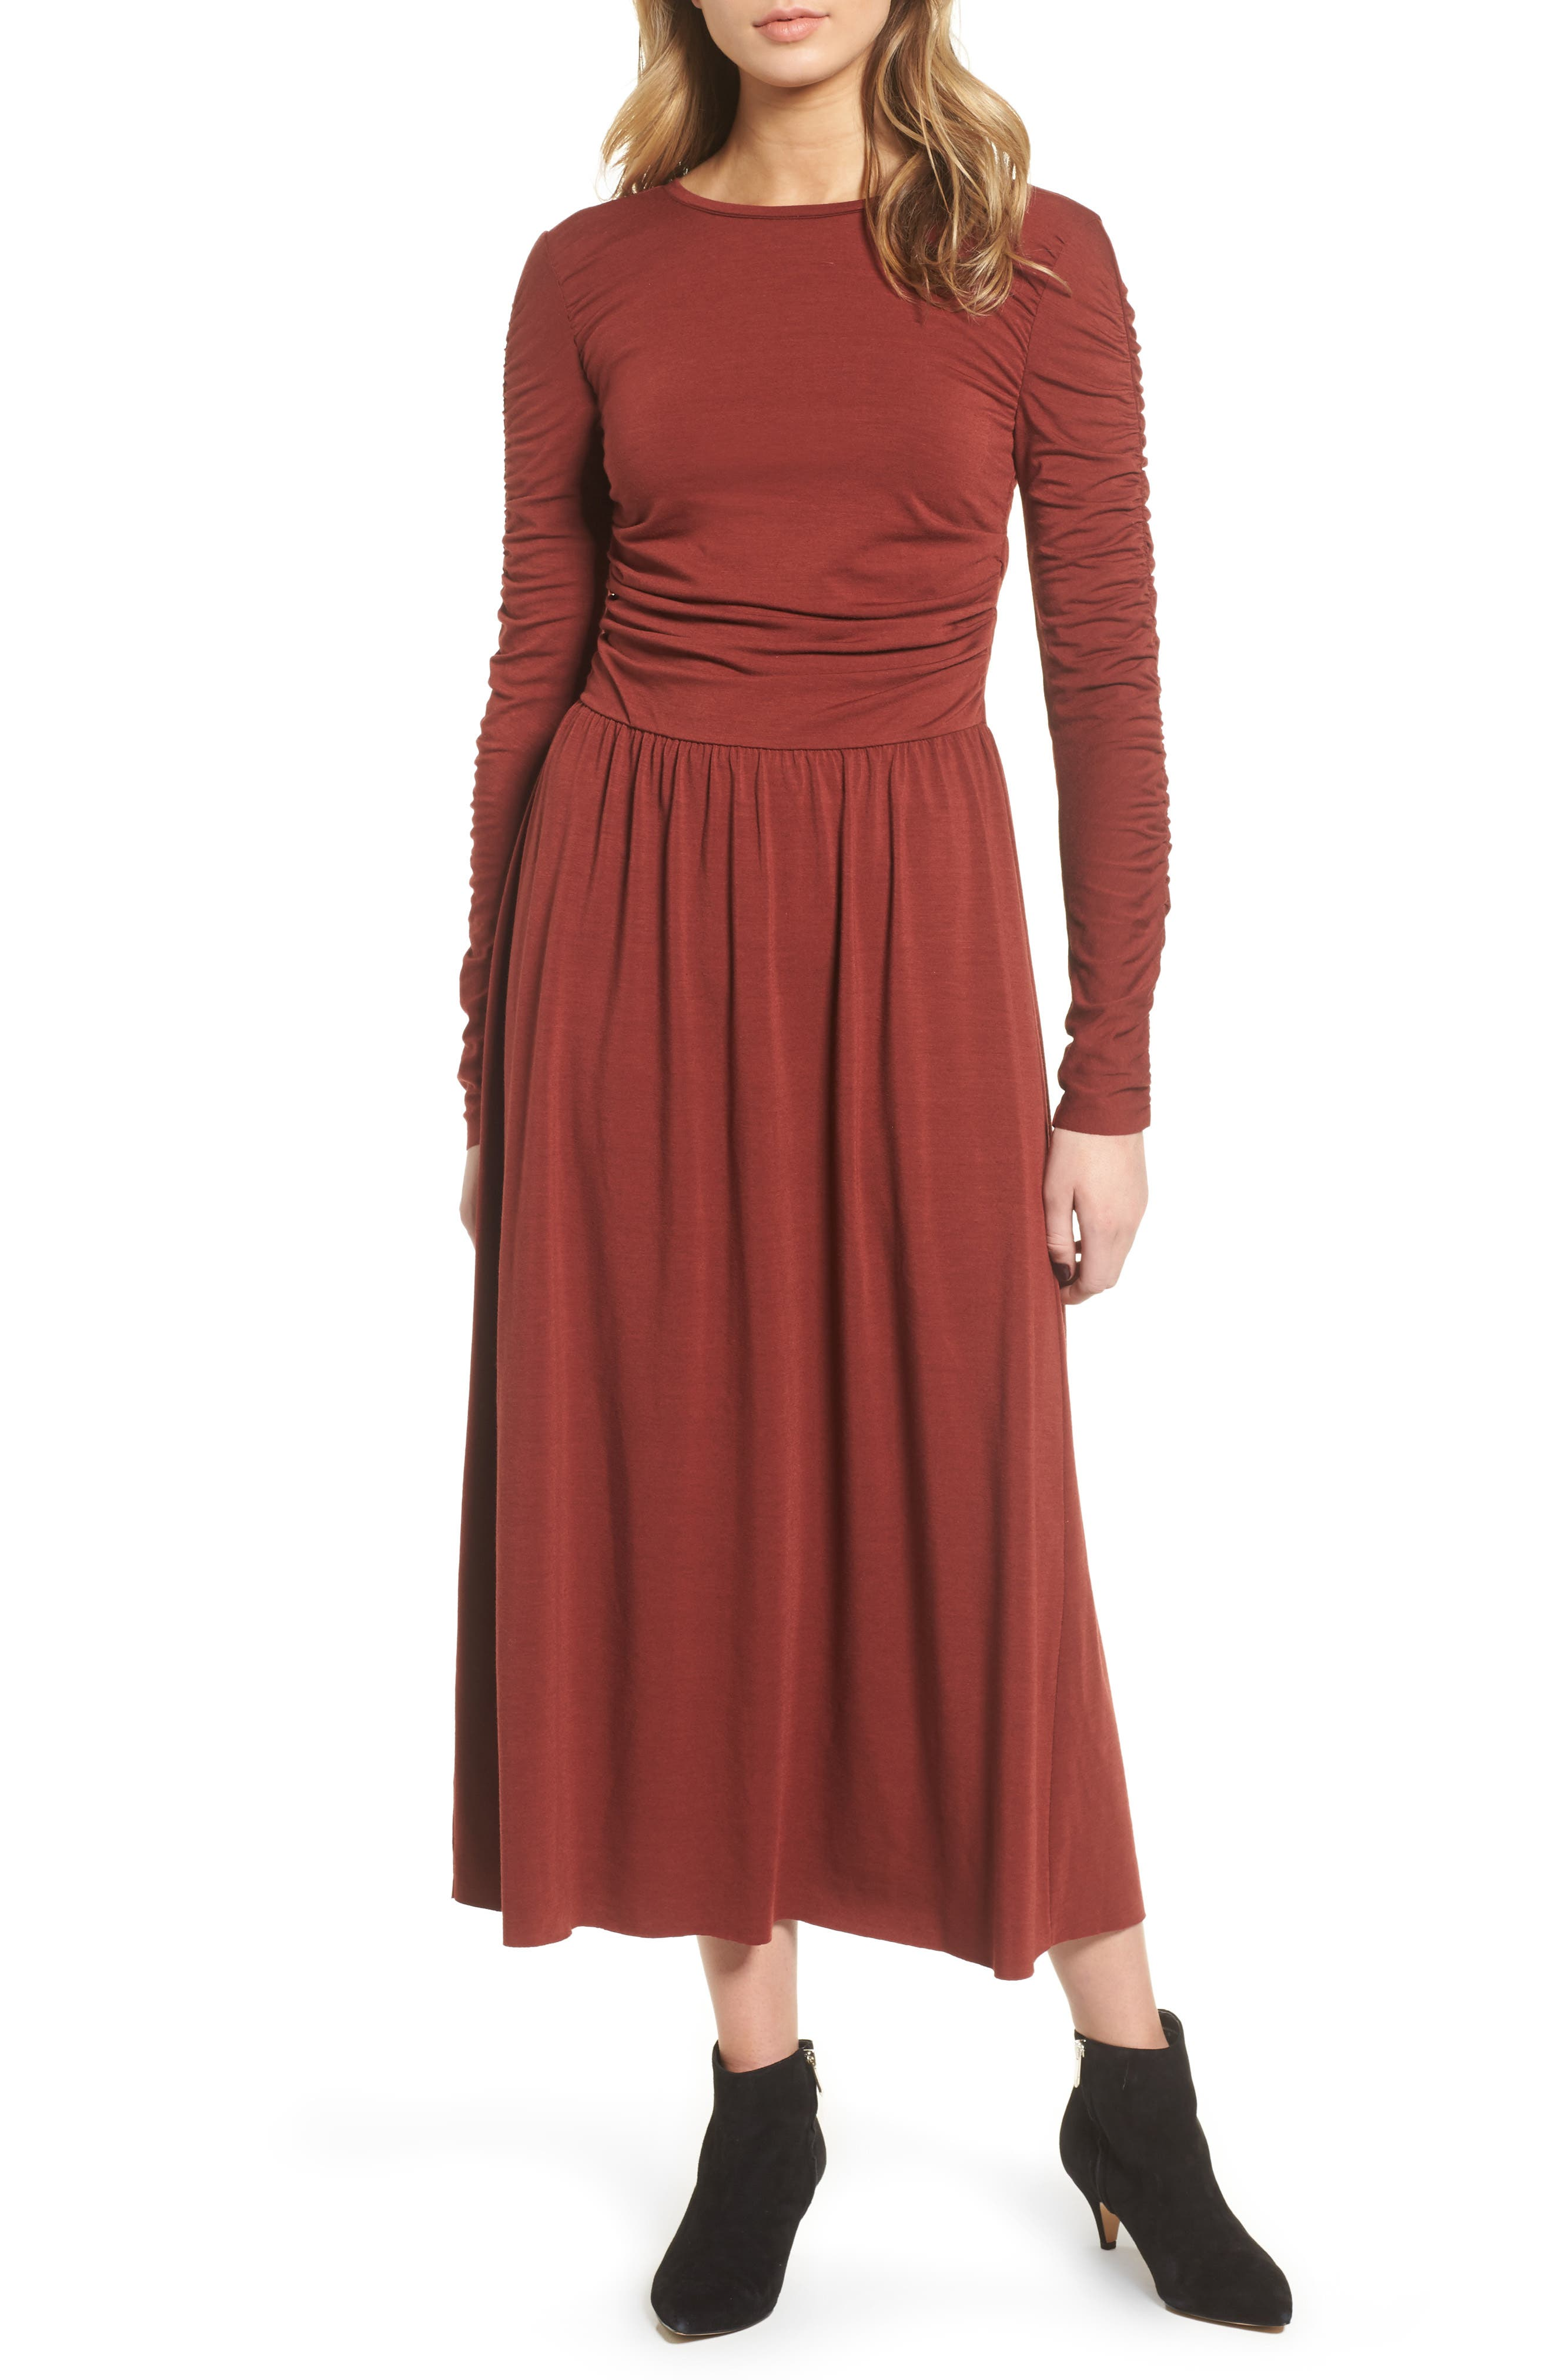 Alternate Image 1 Selected - Treasure & Bond Ruched Jersey Knit Dress